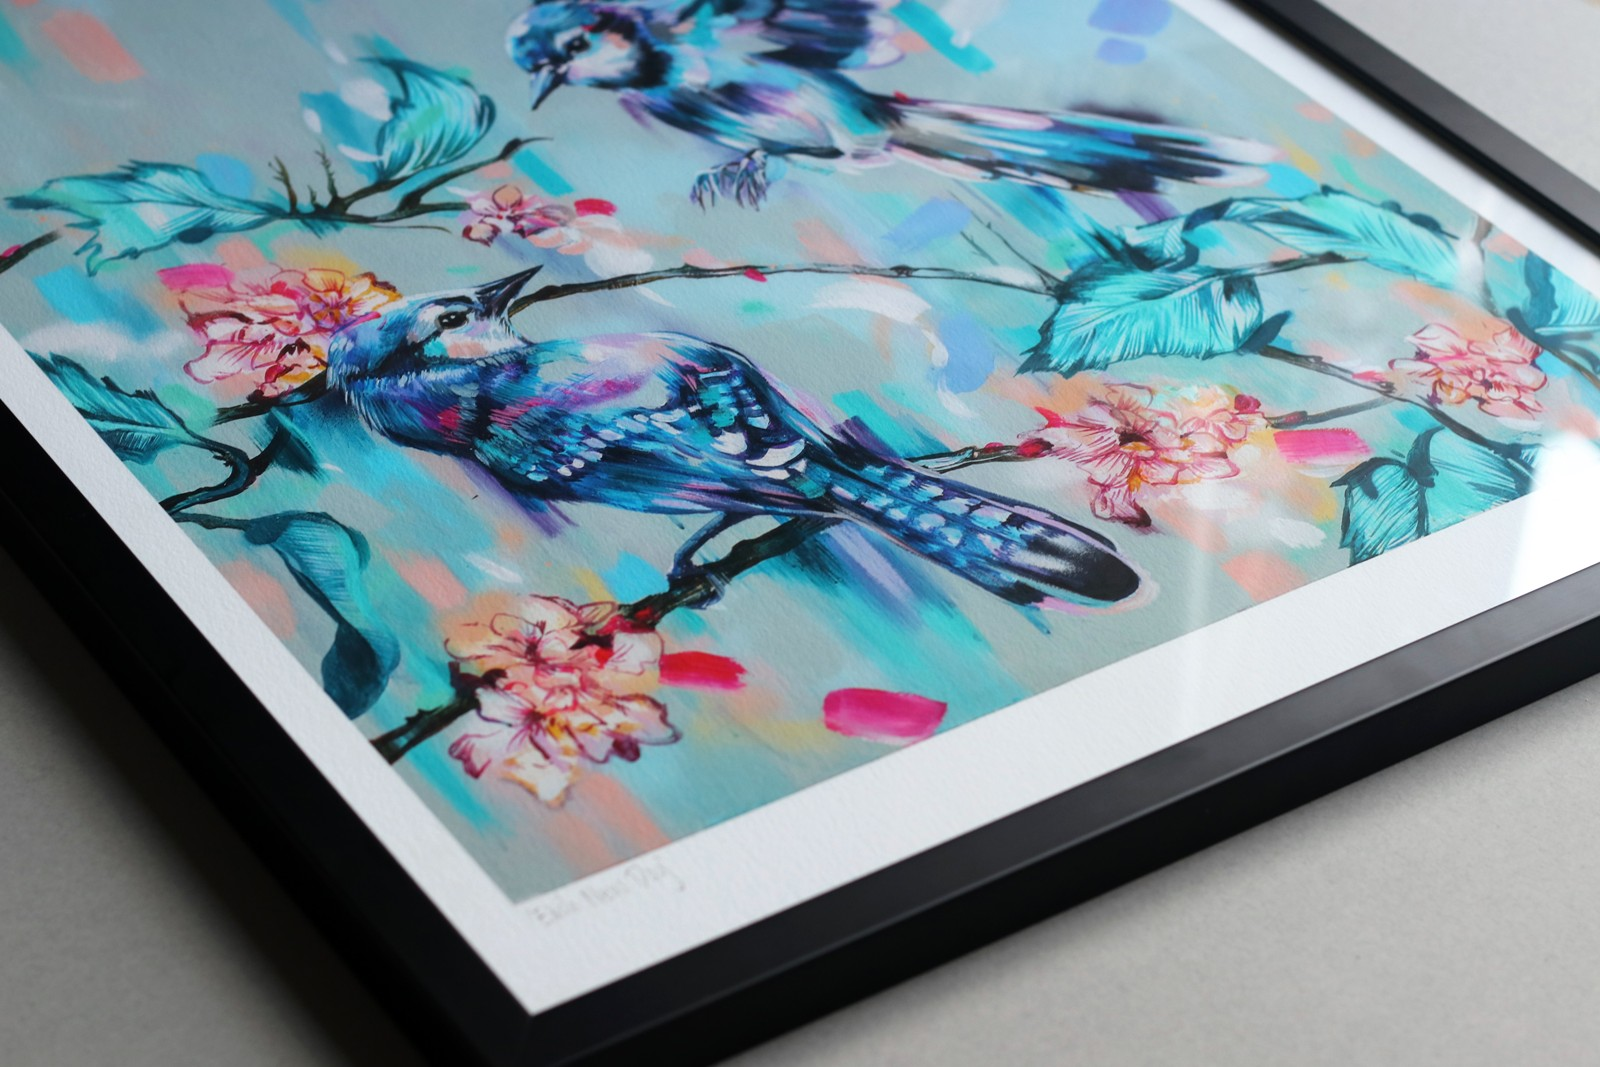 Expertly framed - Conveniently ready to hang in your home, the black gallery-style solid wood and glass frame is an optional choice, making framing straightforward for you.Framed prints are £220